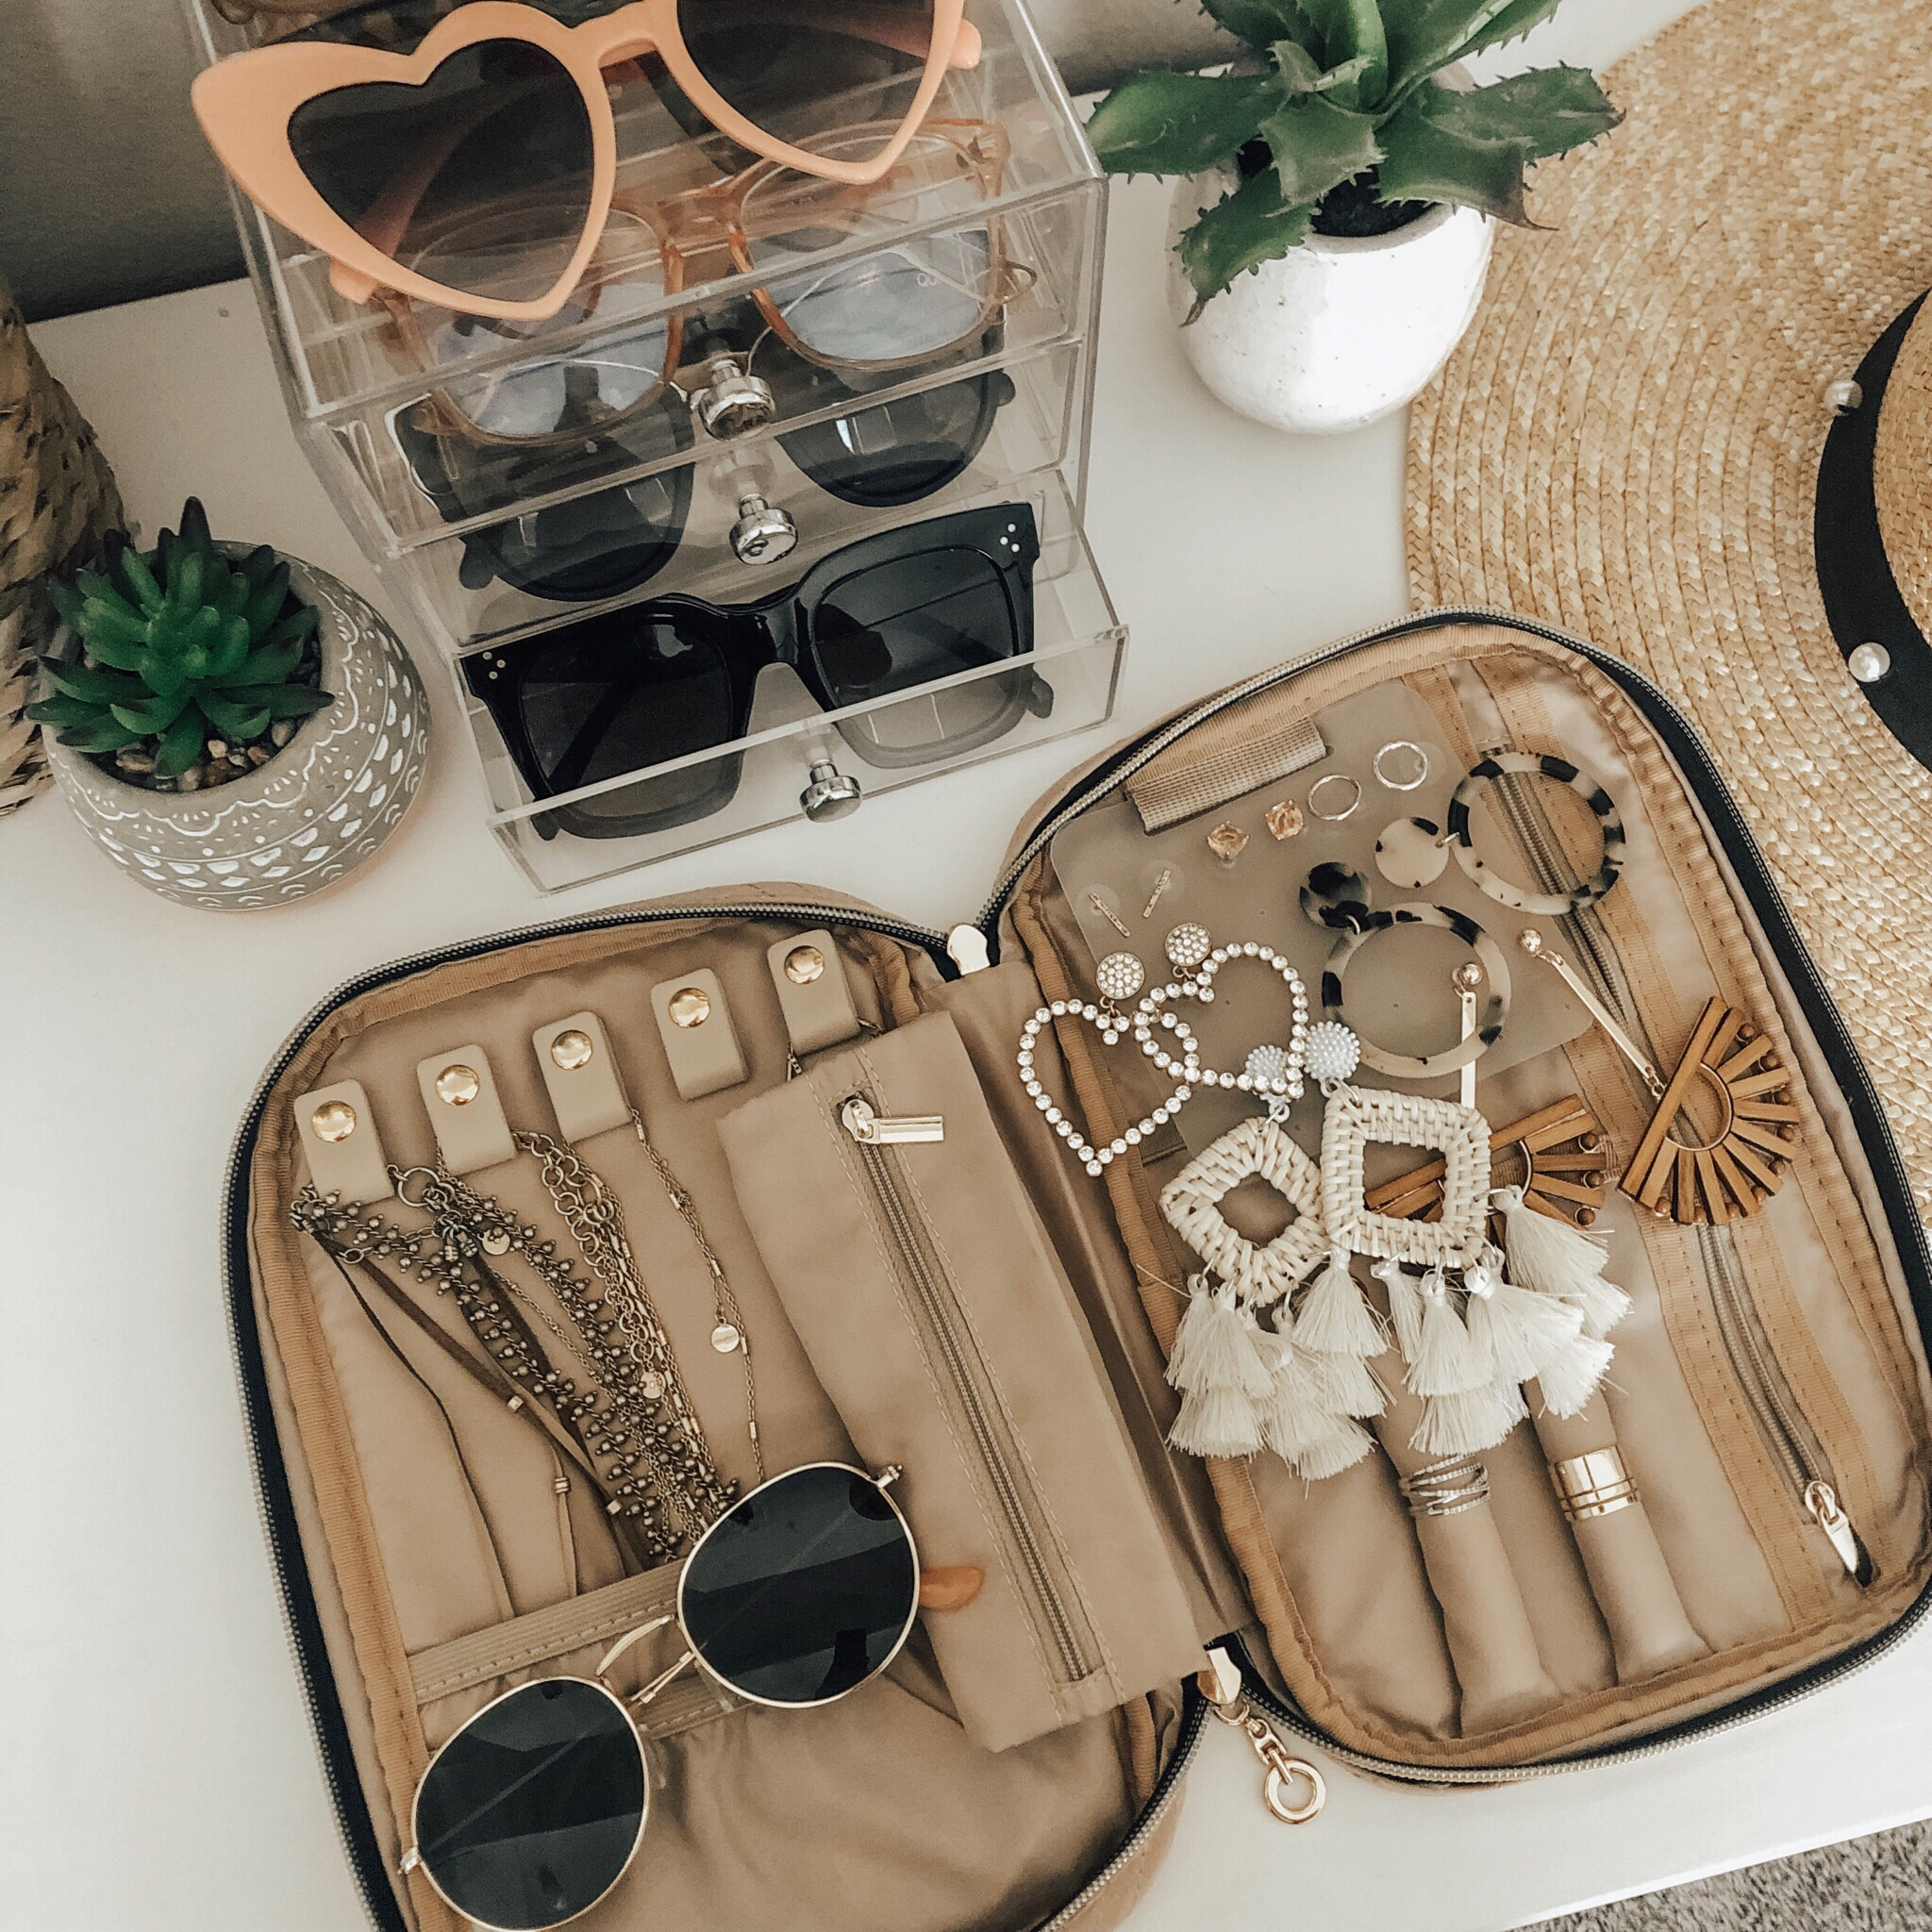 MAY TOP 10- Jaclyn De Leon Style + This month was all about the Amazon finds! 8 out of the top 10 were from Amazon and I'm not one bit surprised. This must-have jewelry case continues to be a top seller. It's totally changed how I store my jewelry when I travel.